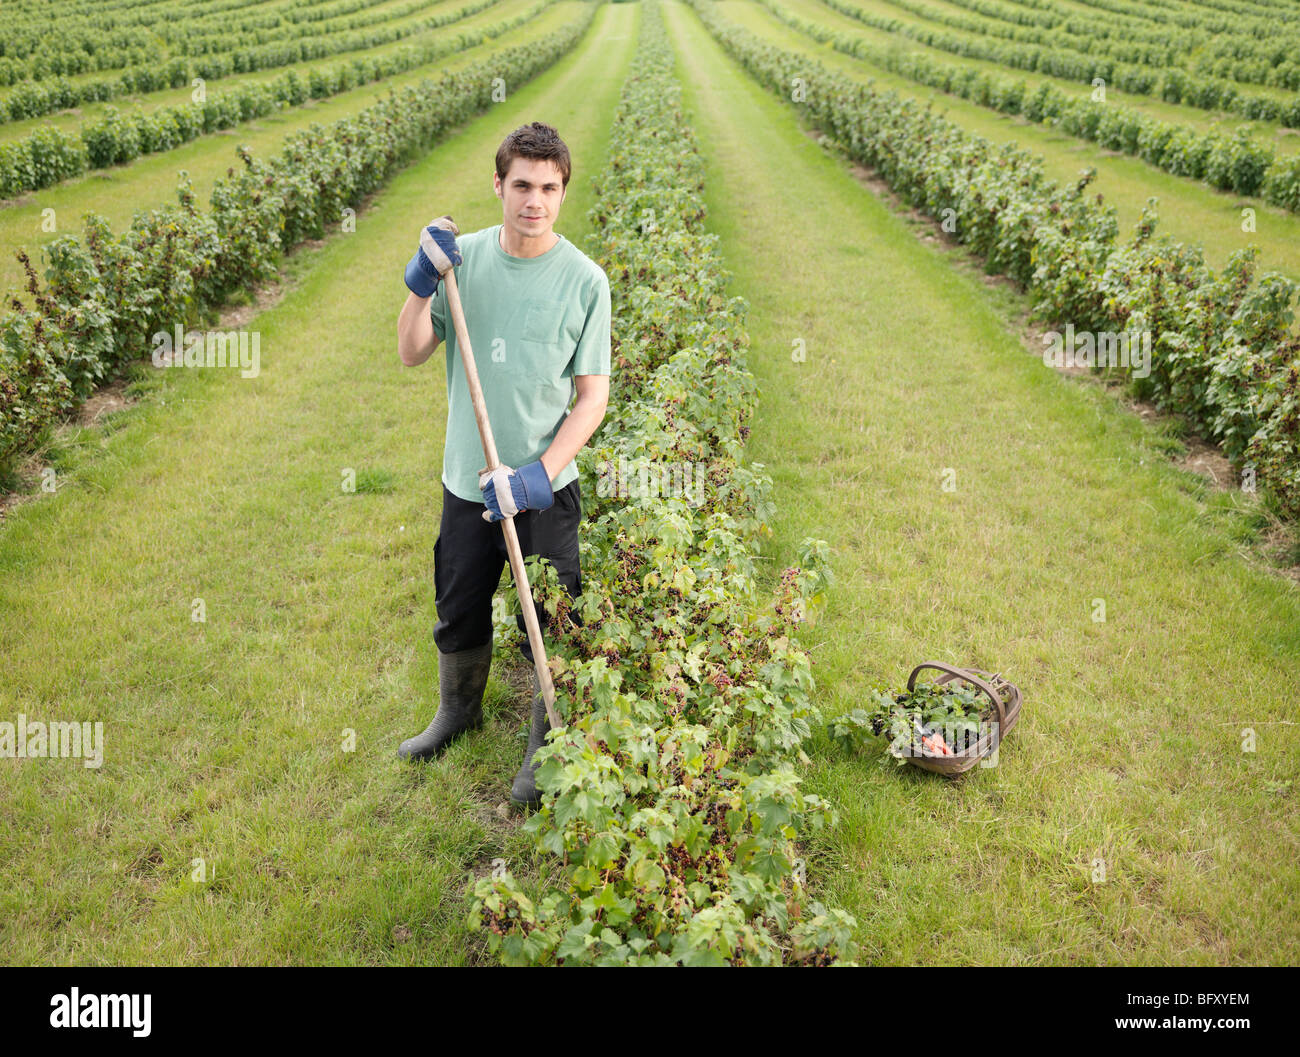 Man With Rows Of Blackcurrant Shrubs - Stock Image